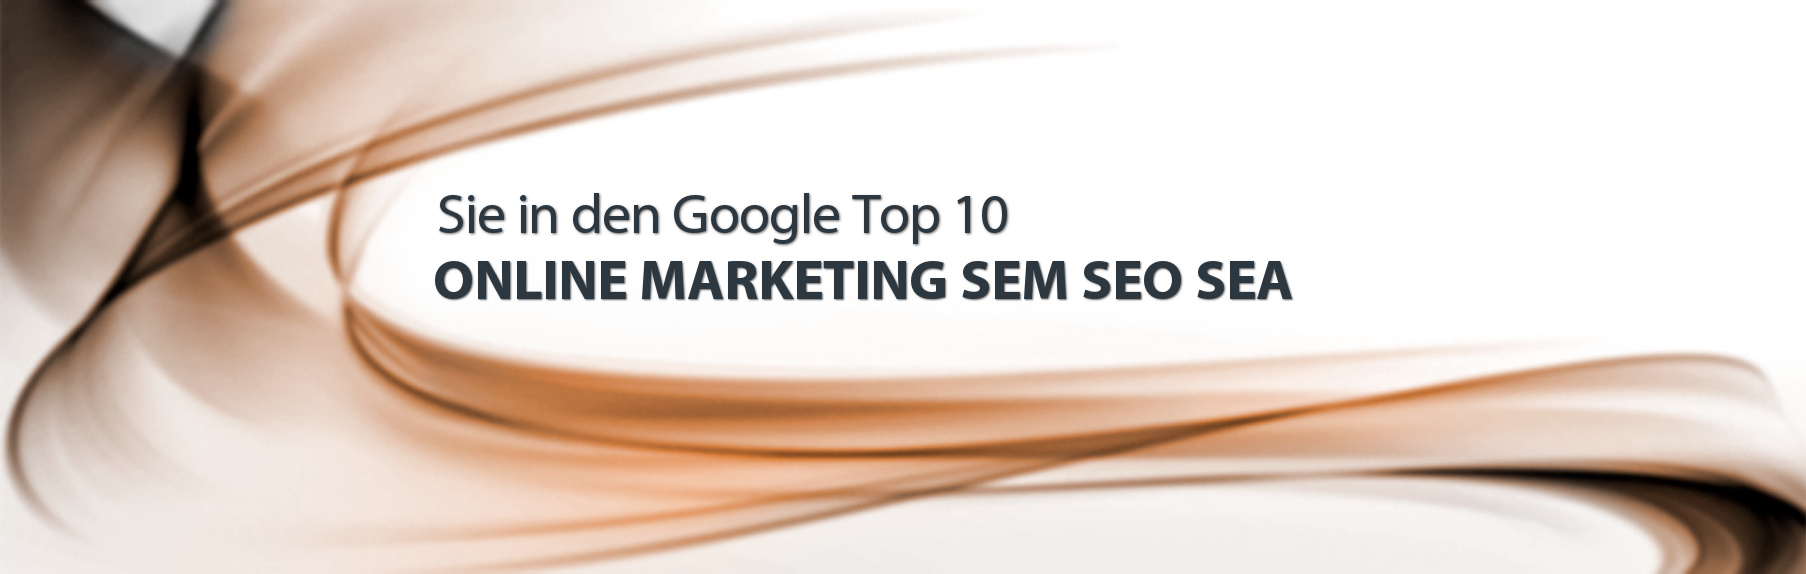 Sie in den Google Top 10. Online Marketing SEM SEO SEA.